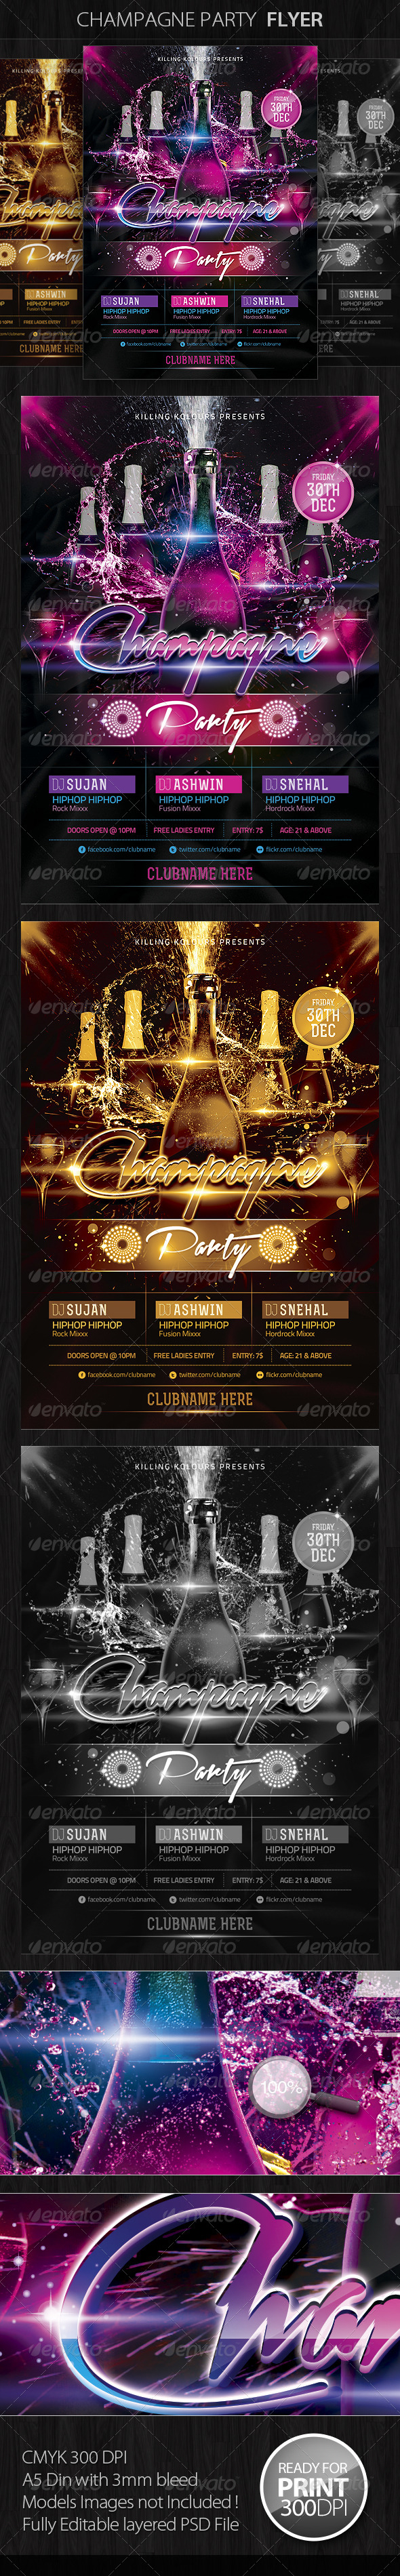 Champagne Party Flyer - Clubs & Parties Events